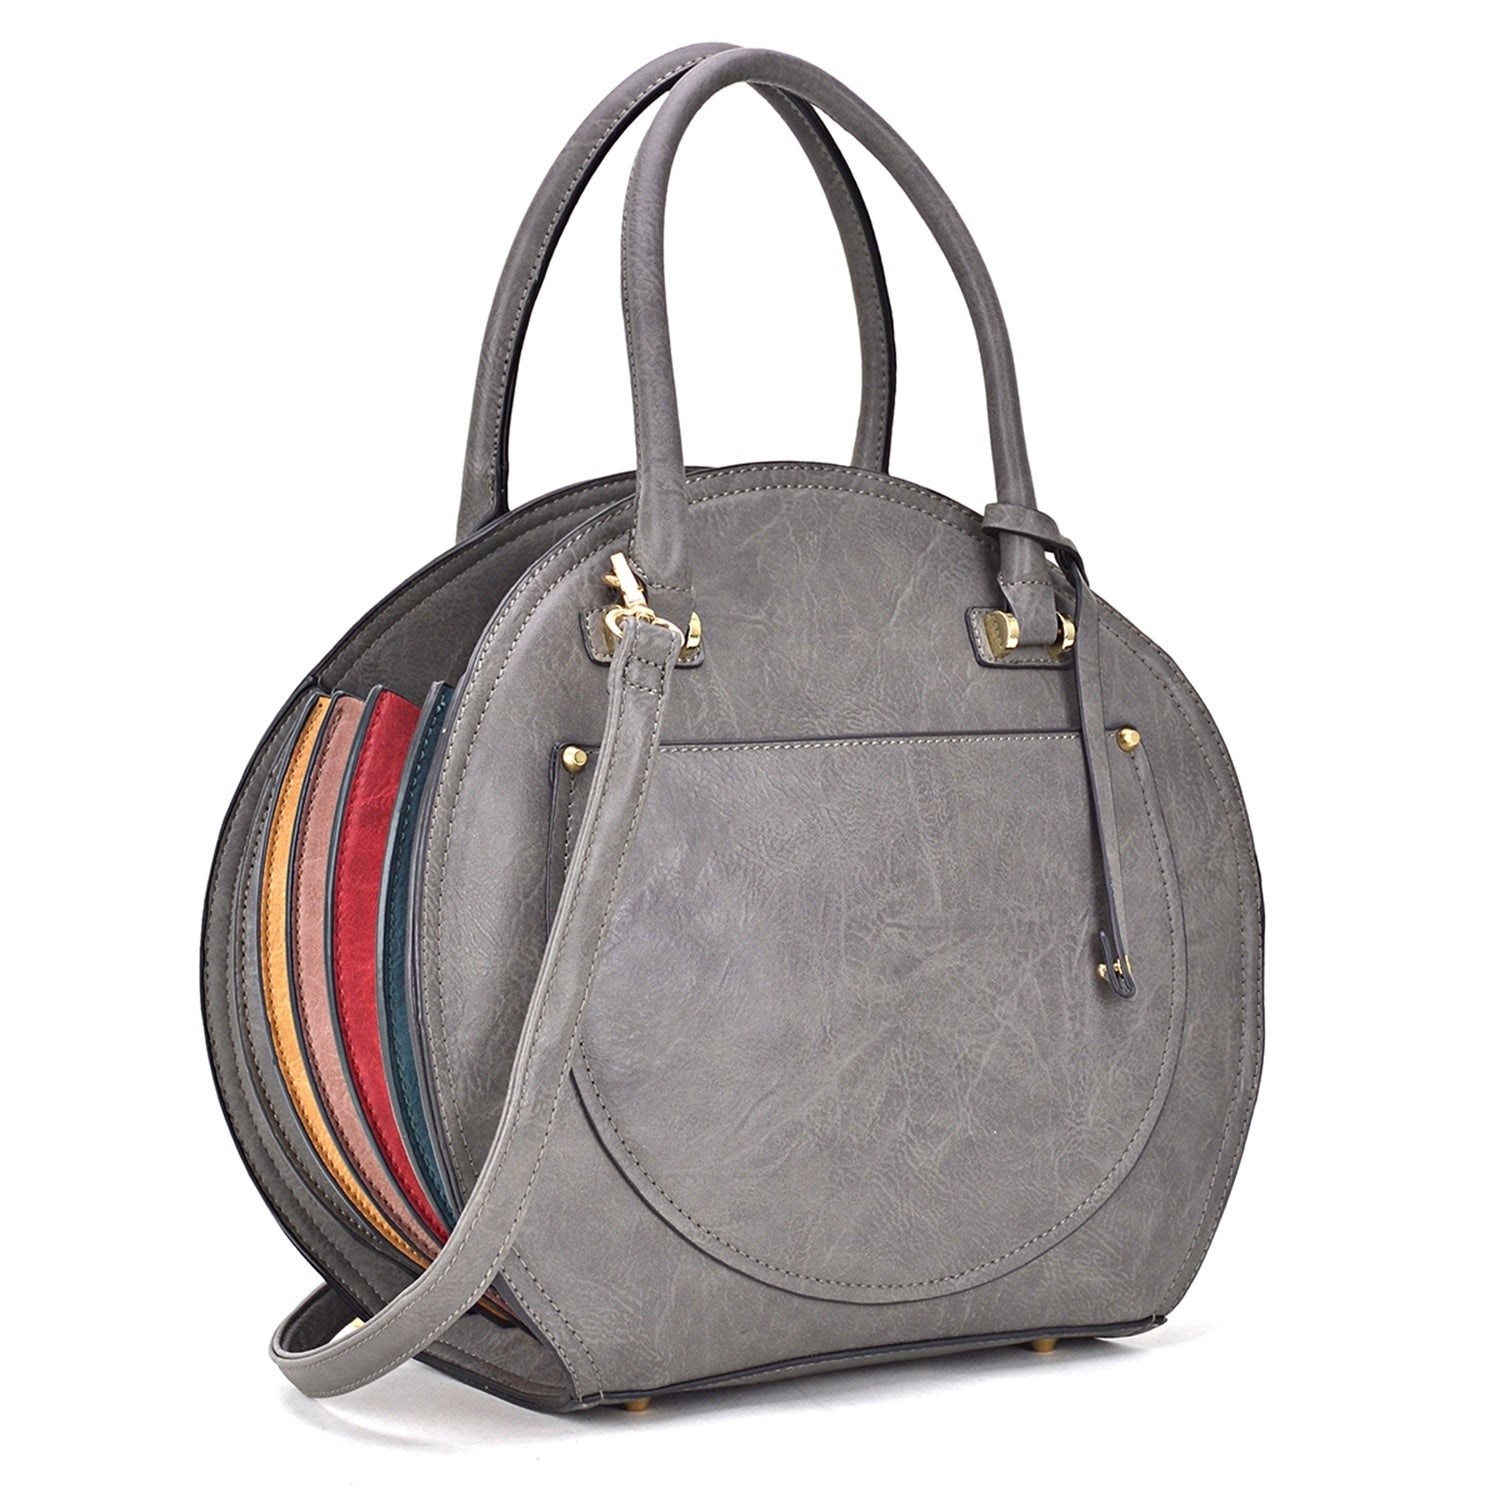 24ec722d24f6 Leather Oval shaped Satchel with Fanfold multi color edge design on both  sides